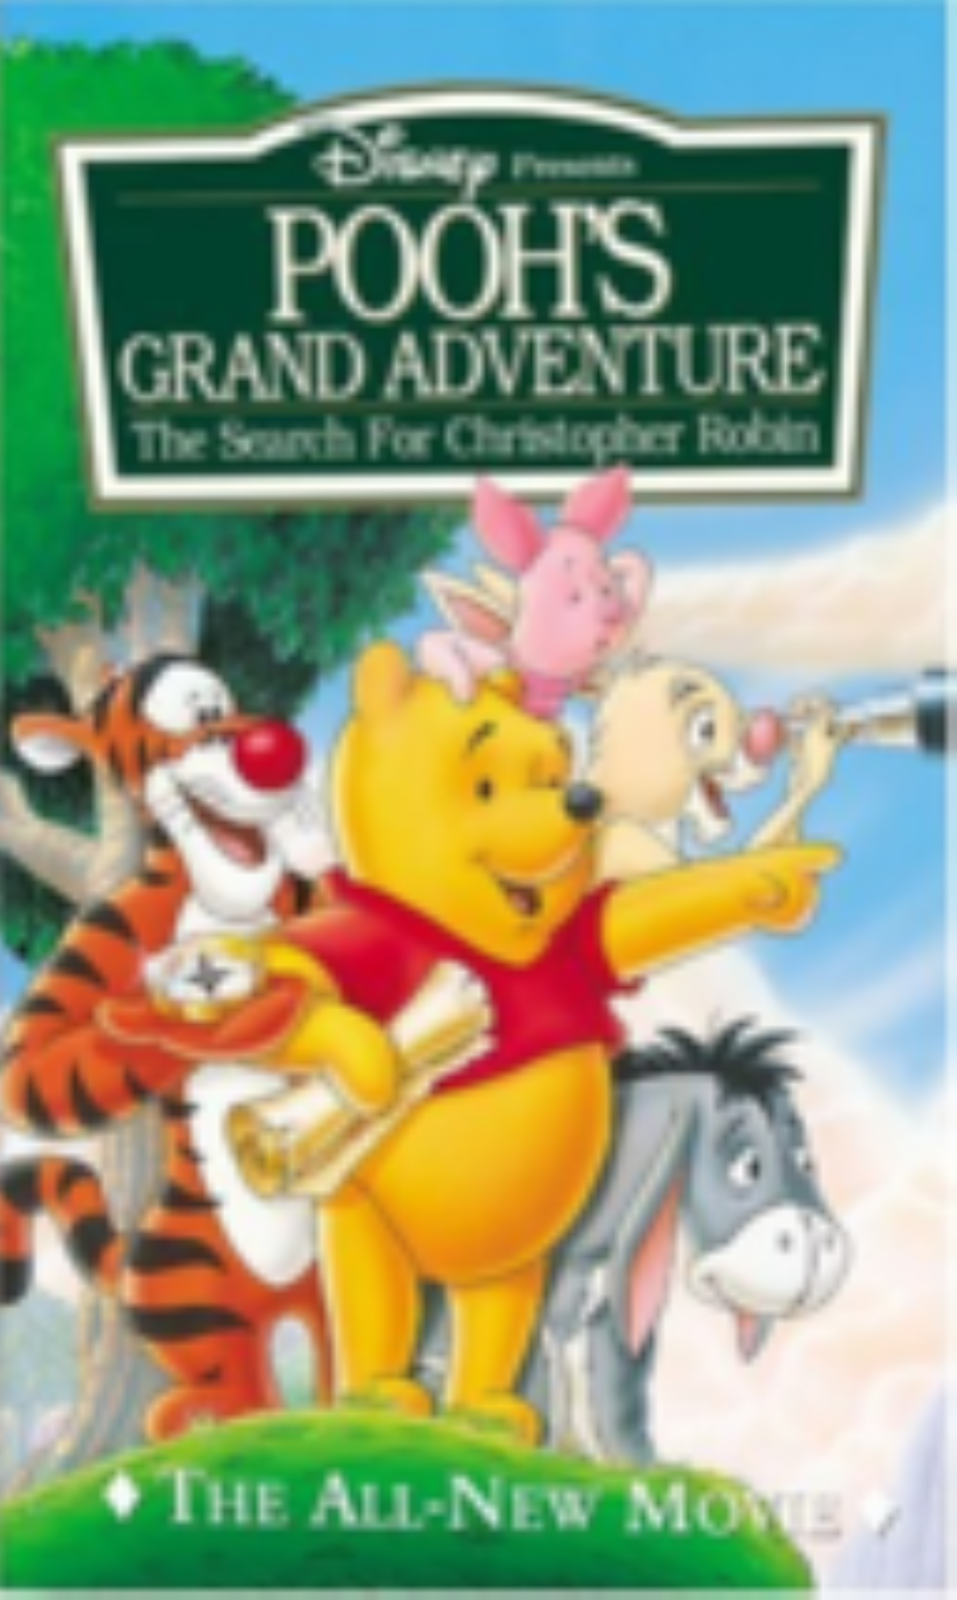 Pooh's Grand Adventure - The Search for Christopher Robin Vhs